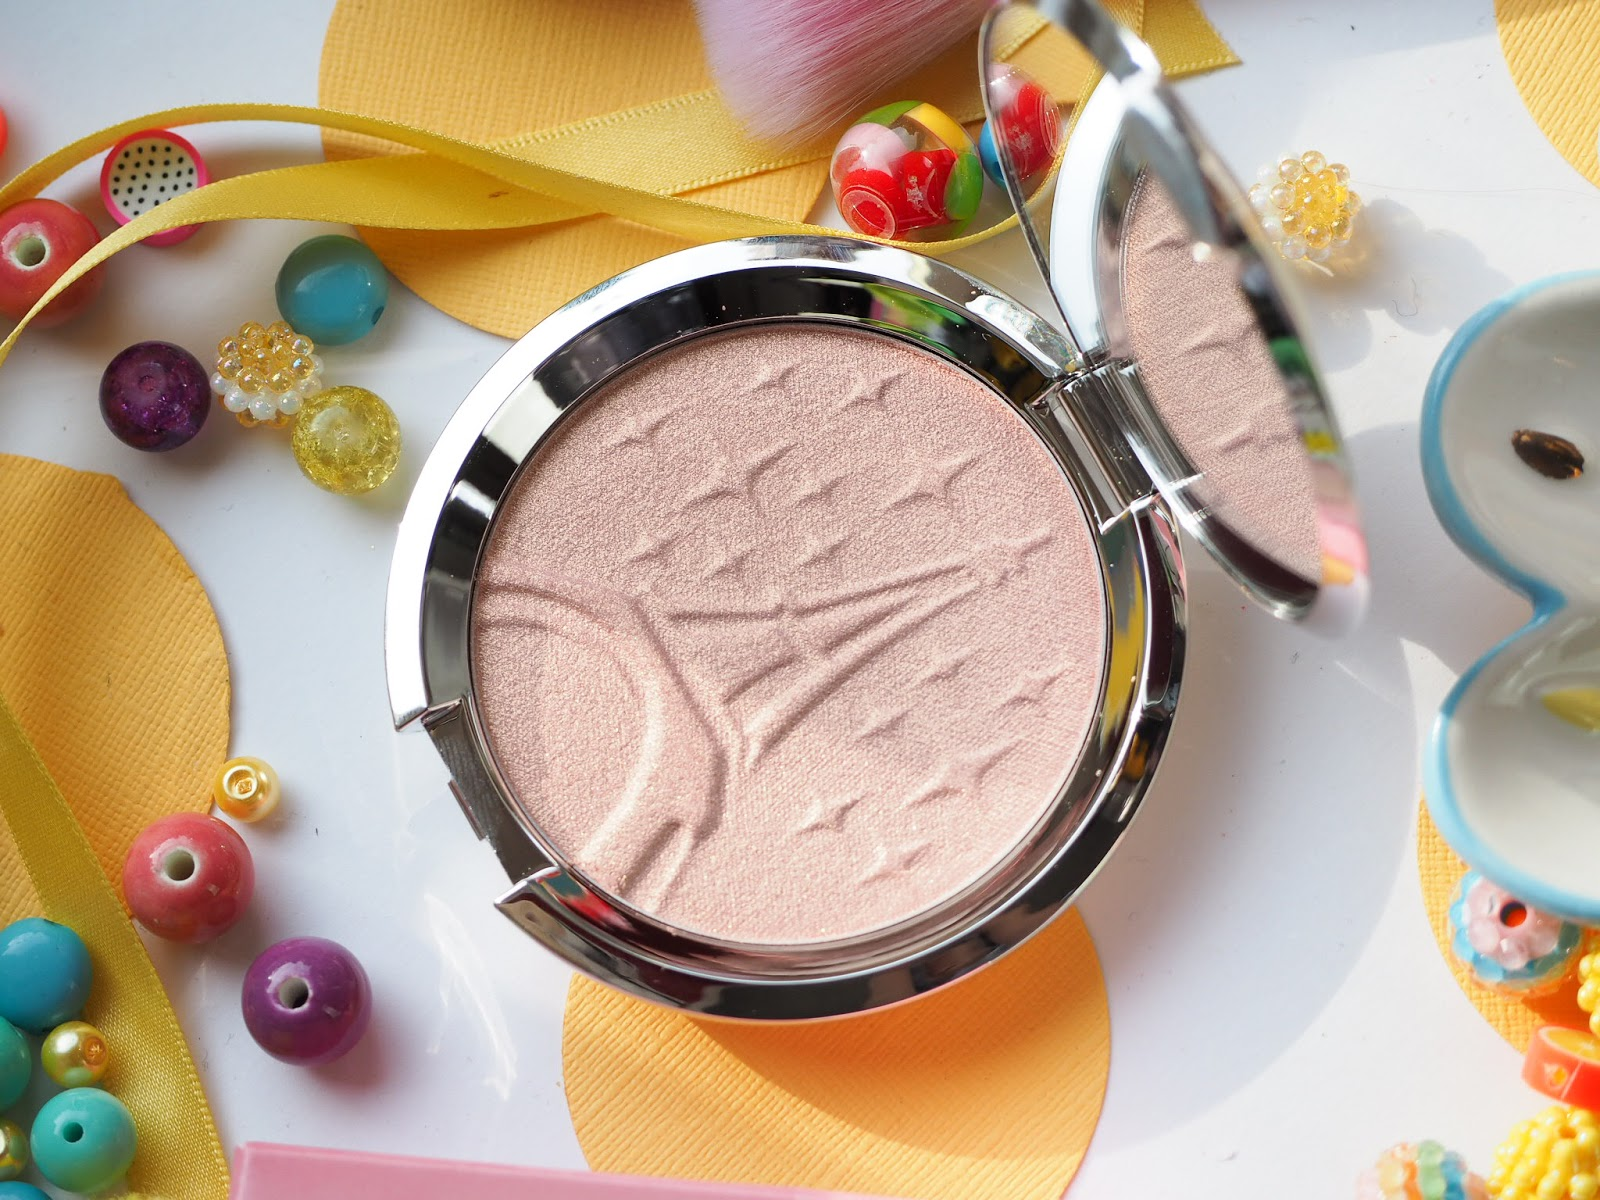 BECCA x Sananas Shimmering Skin Perfector Pressed Highlighter - Parisian Lights